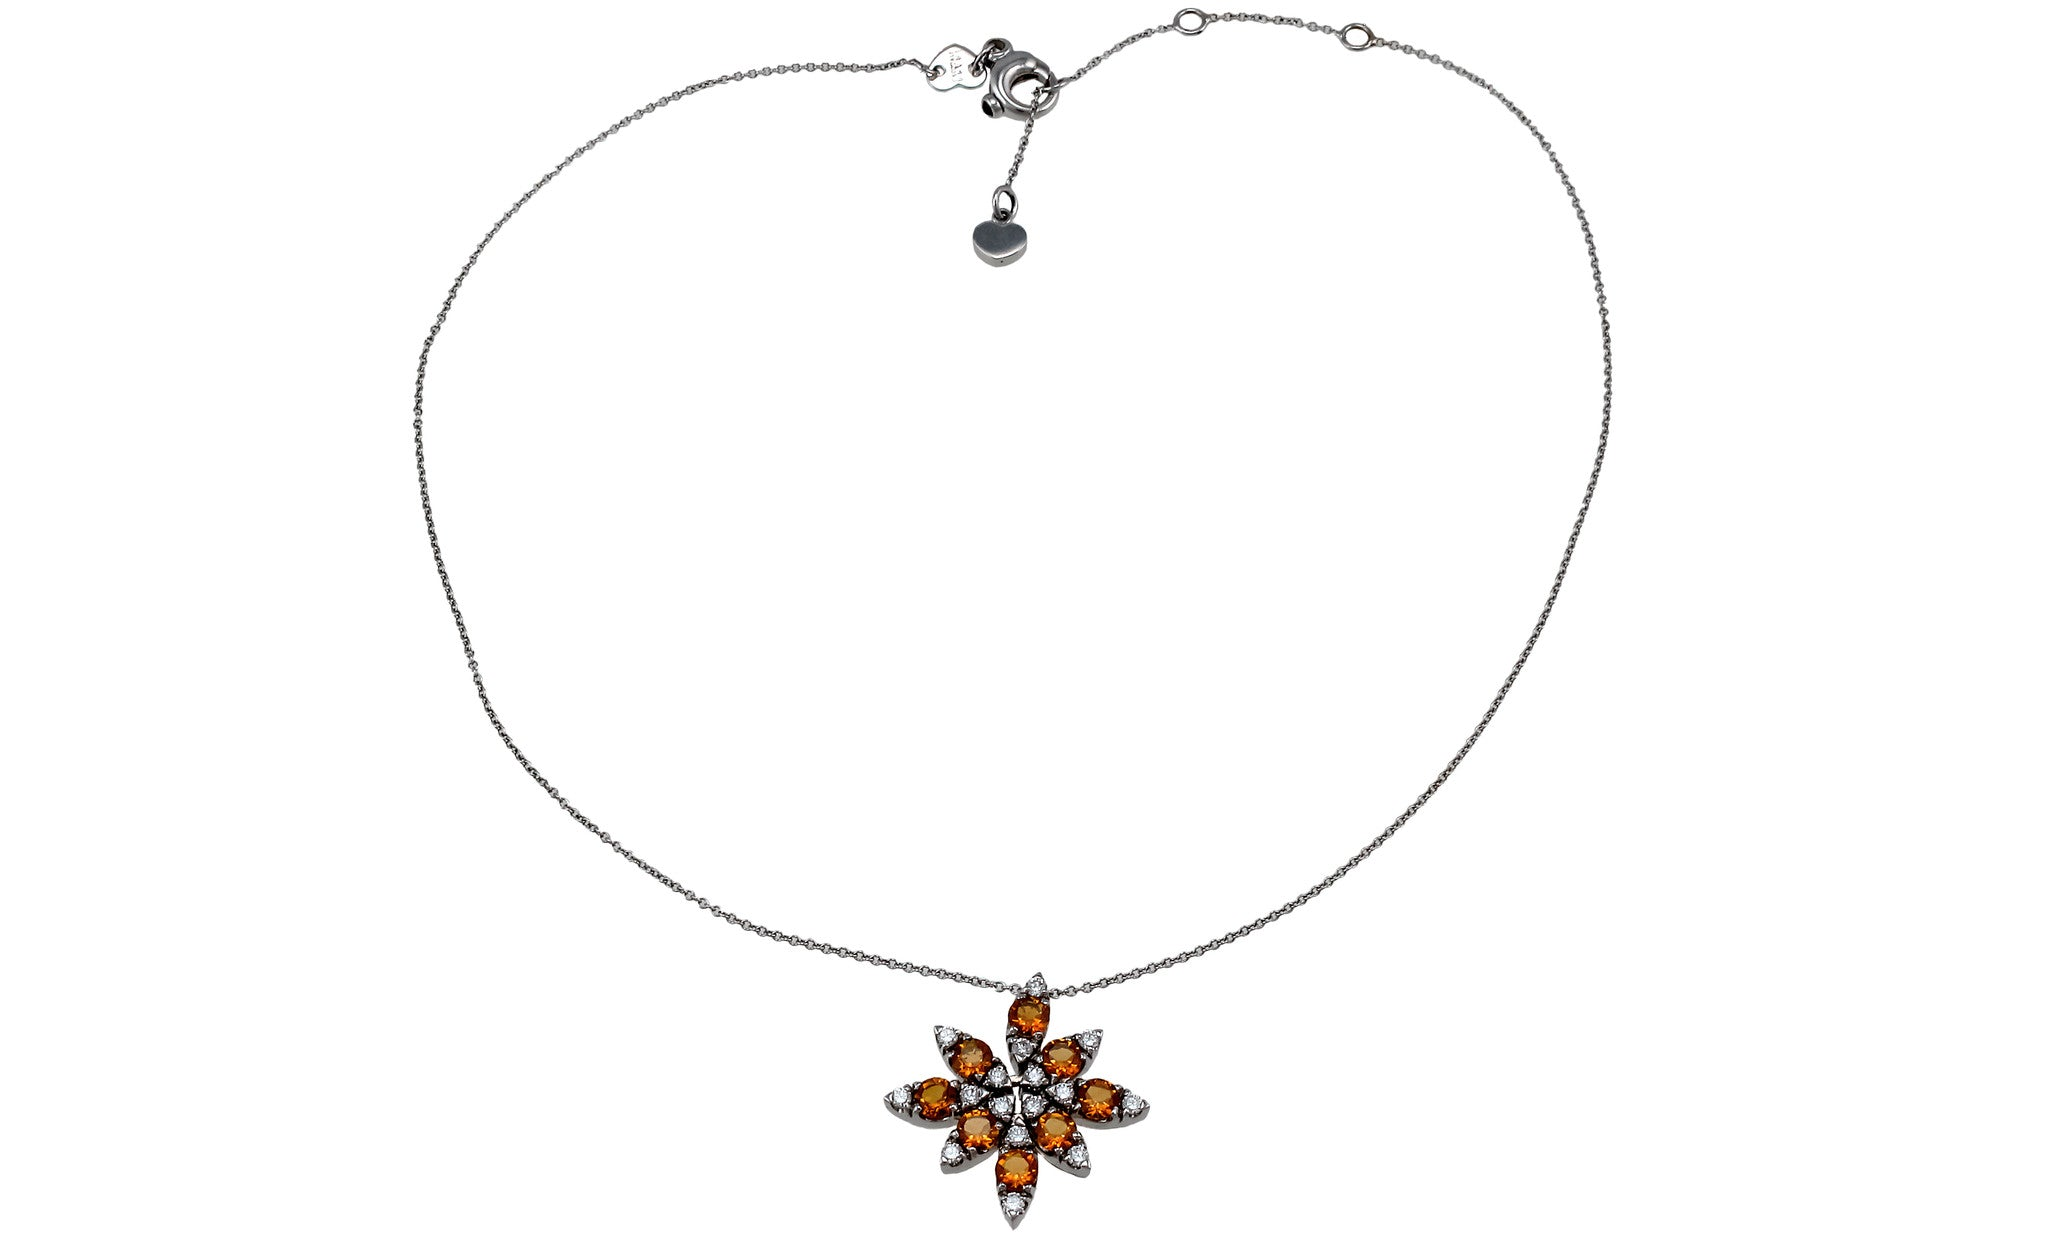 Little Rosette Ghirl 18K White Gold Necklace (Gold: 10.46 g; Diamonds: 0.55 ct. twd. / Sapphires: 0.06 ct. tw. / Topaz: 1.56 ct. tw.) - Chain Length: 16.5 in